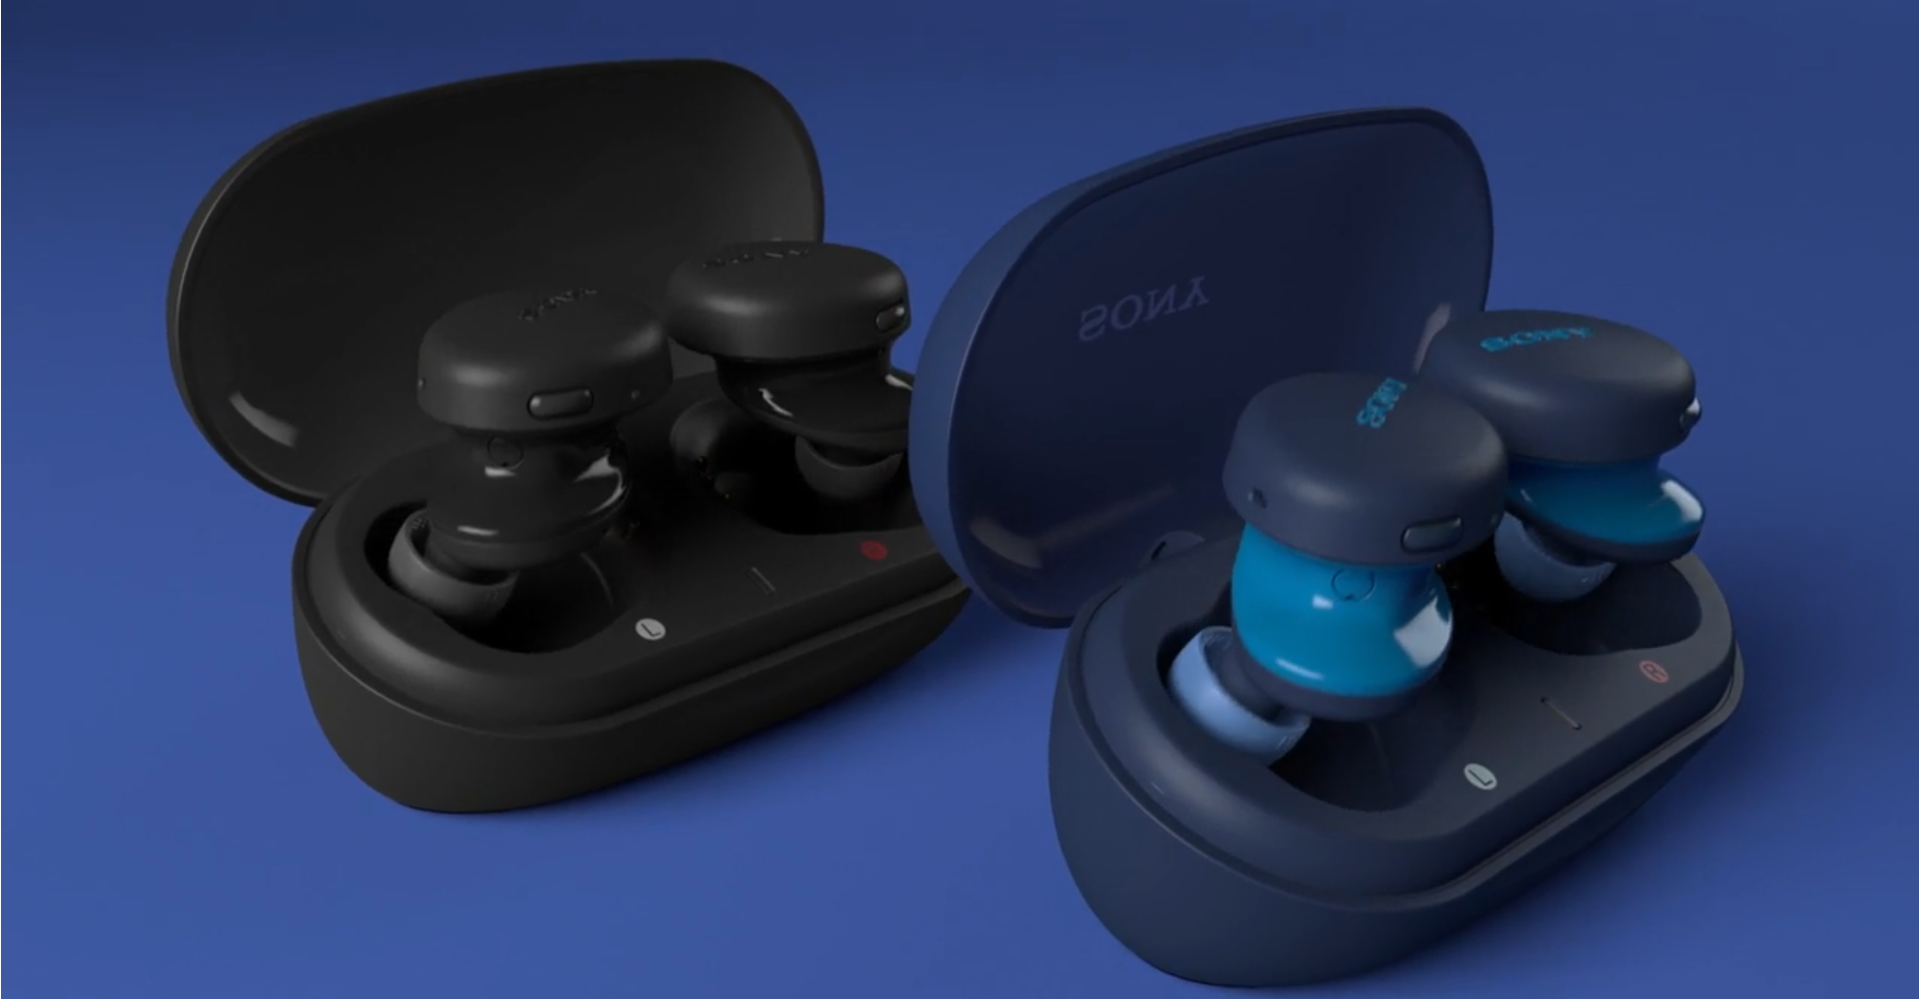 Image of article 'Sony announces new TWS earphones with EXTRA BASS'